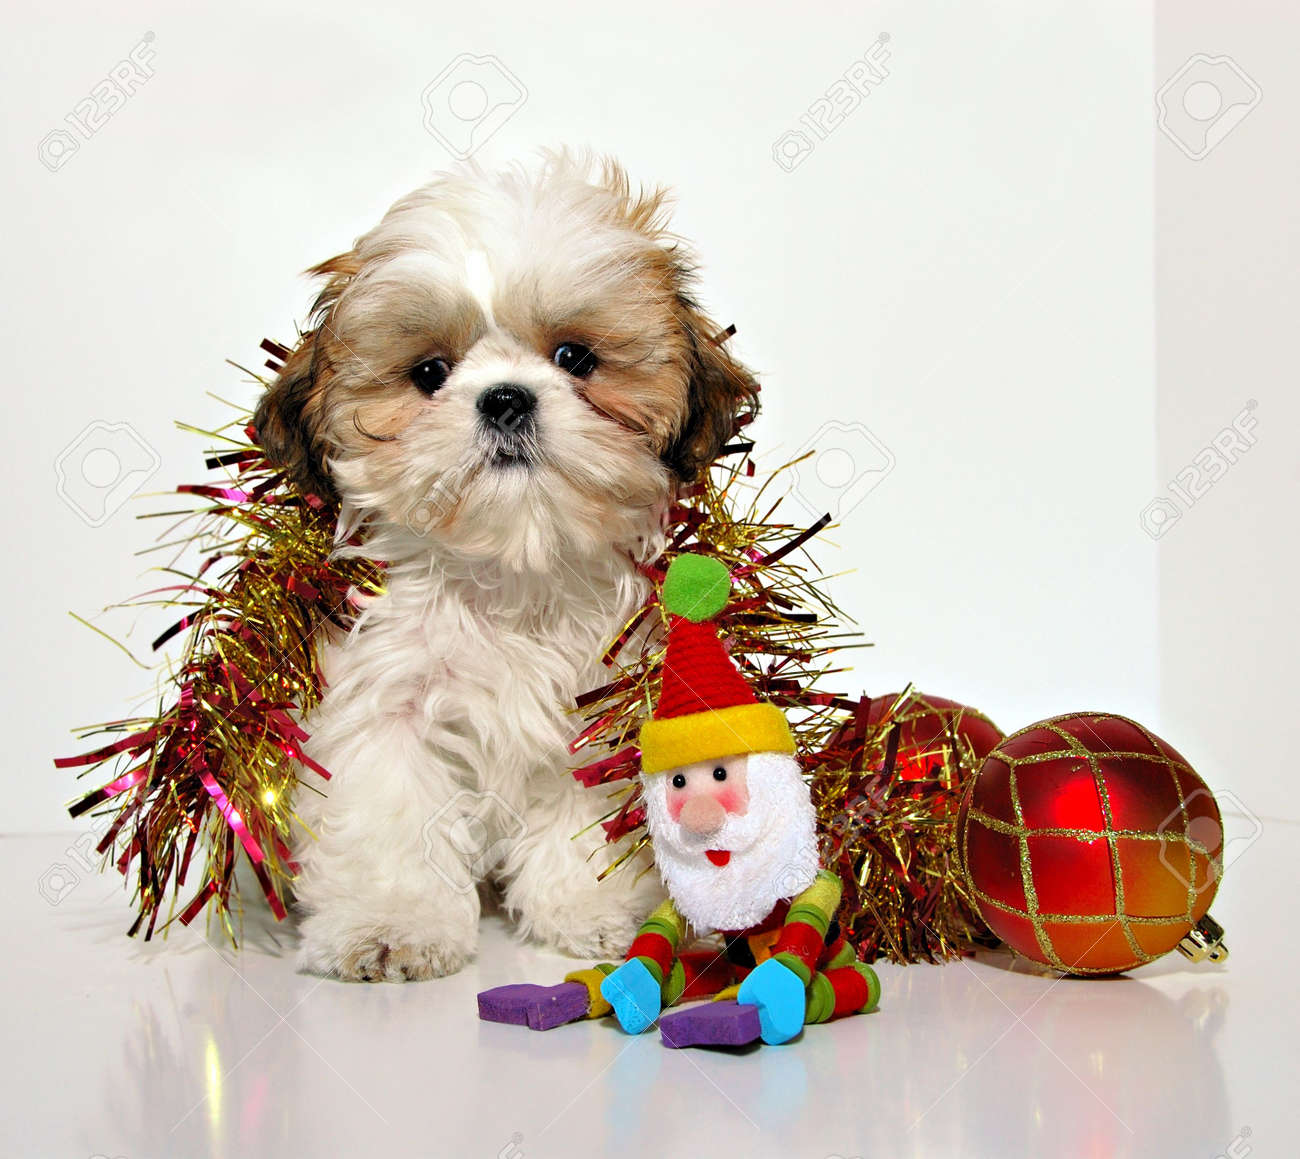 Christmas Puppy - A Shih Tzu Puppy And Christmas Holiday Ornaments ...